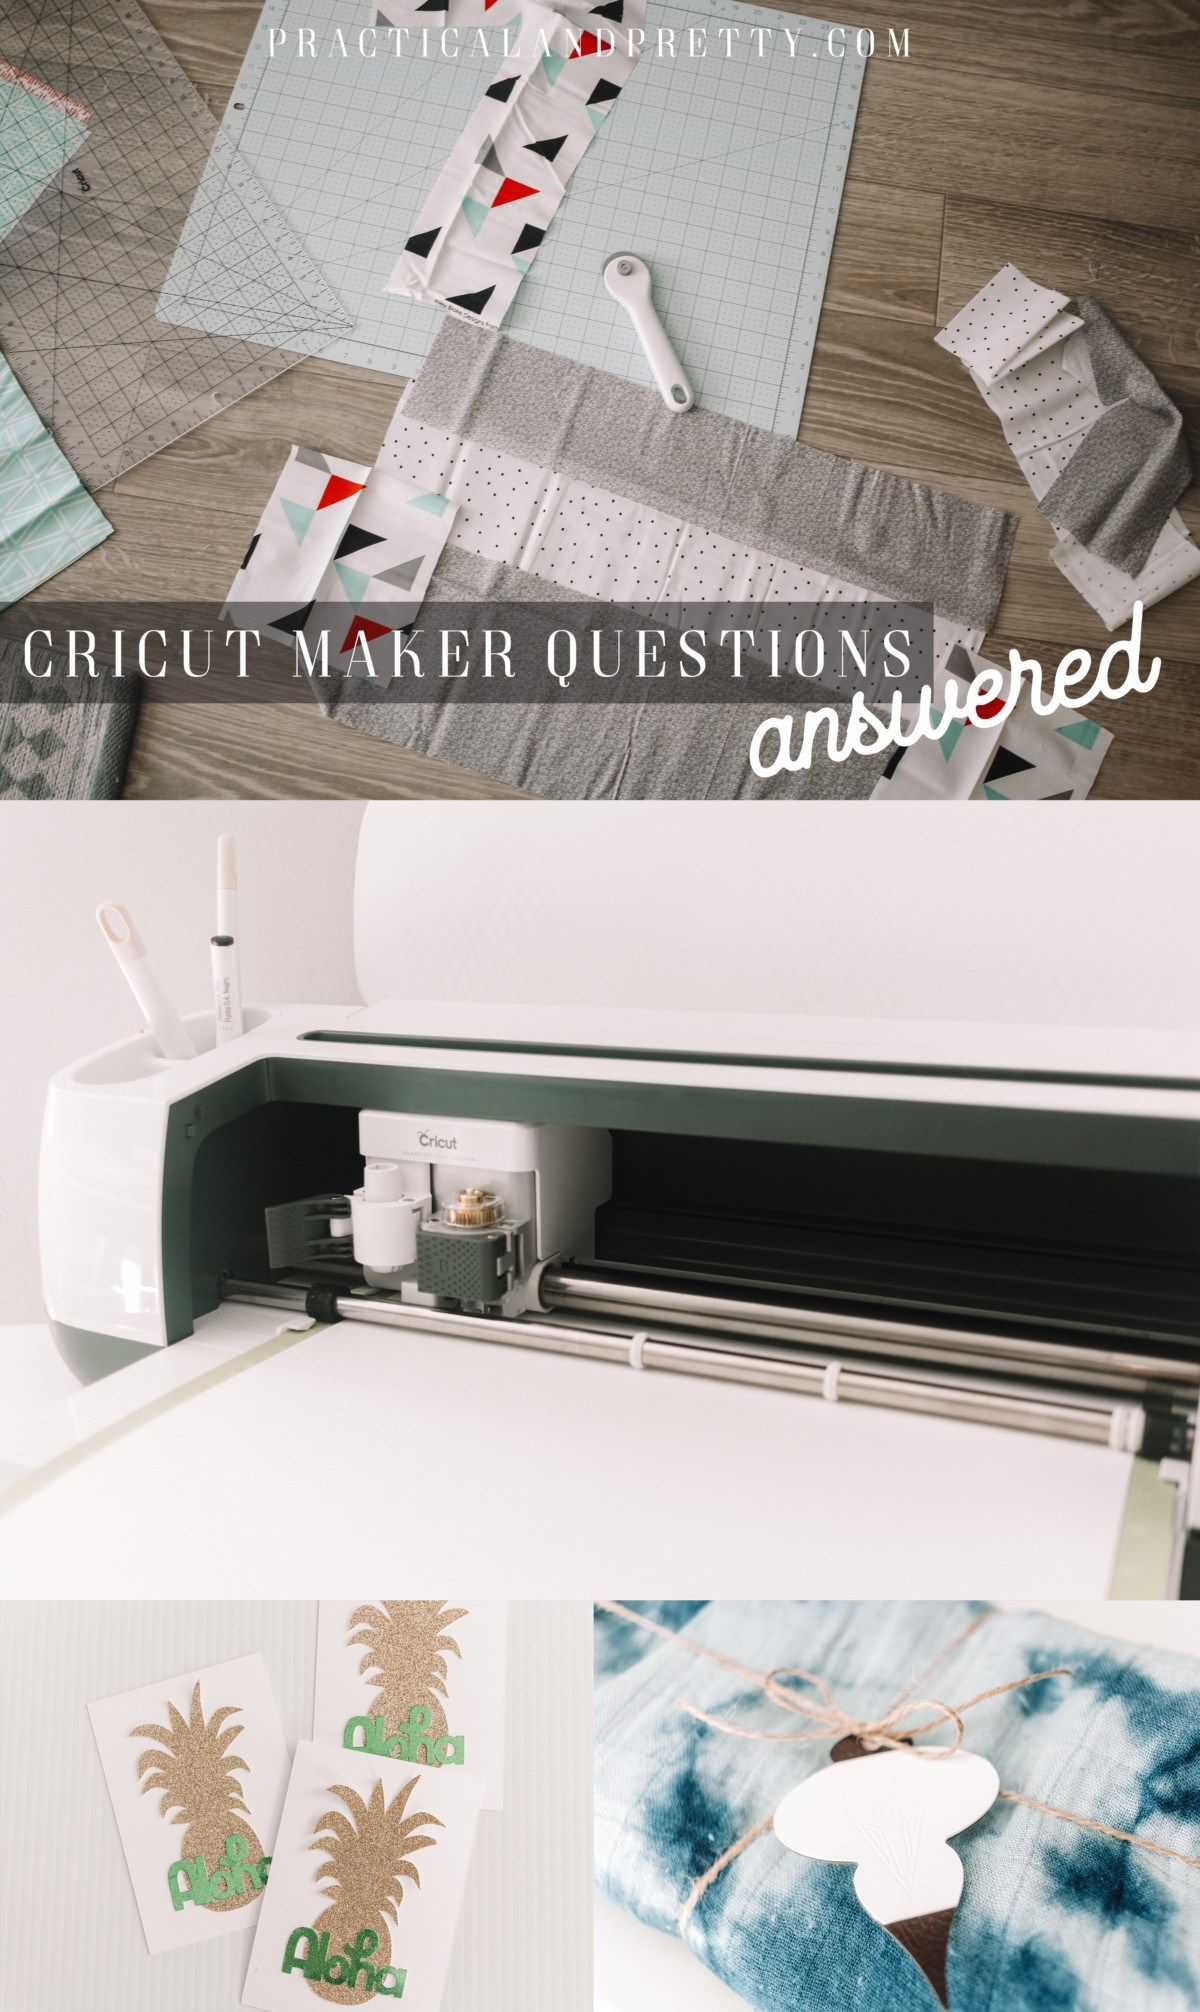 Would I Use A Cricut Maker And Other Cricut Faqs Answered Practical And Pretty Easy Diy Crafts Cricut Explore Projects Cricut